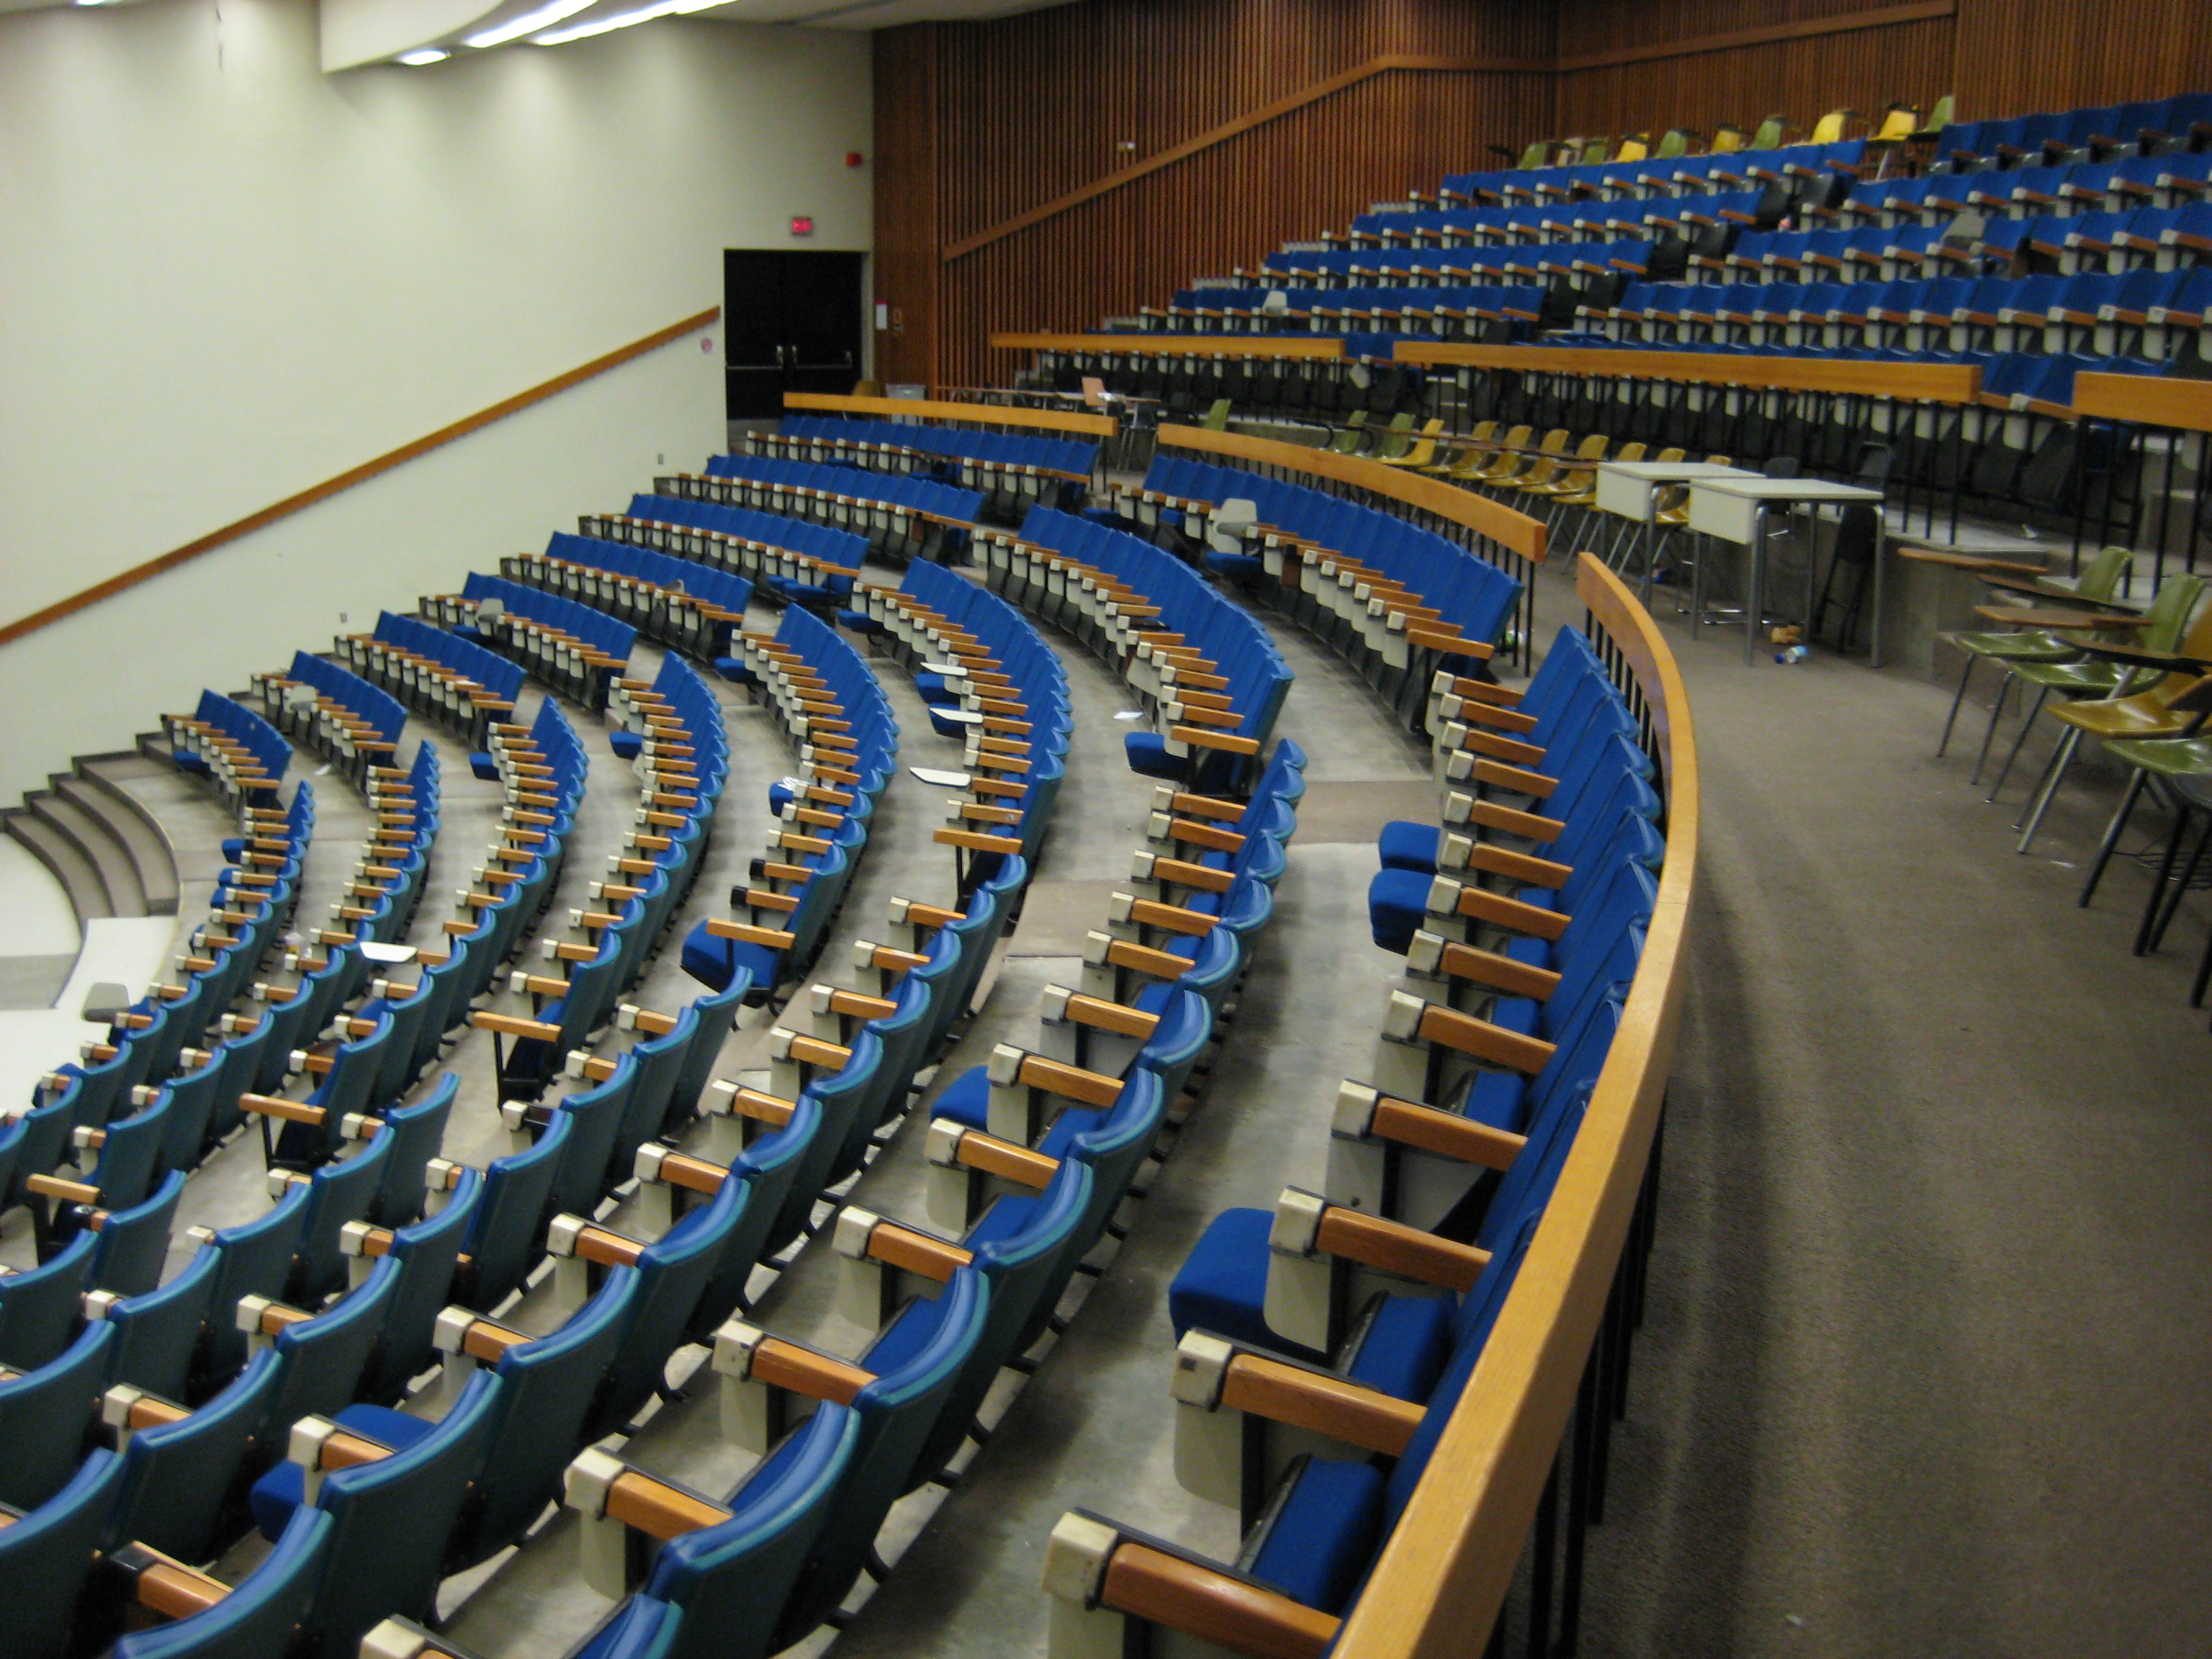 York university curtis lecture hall